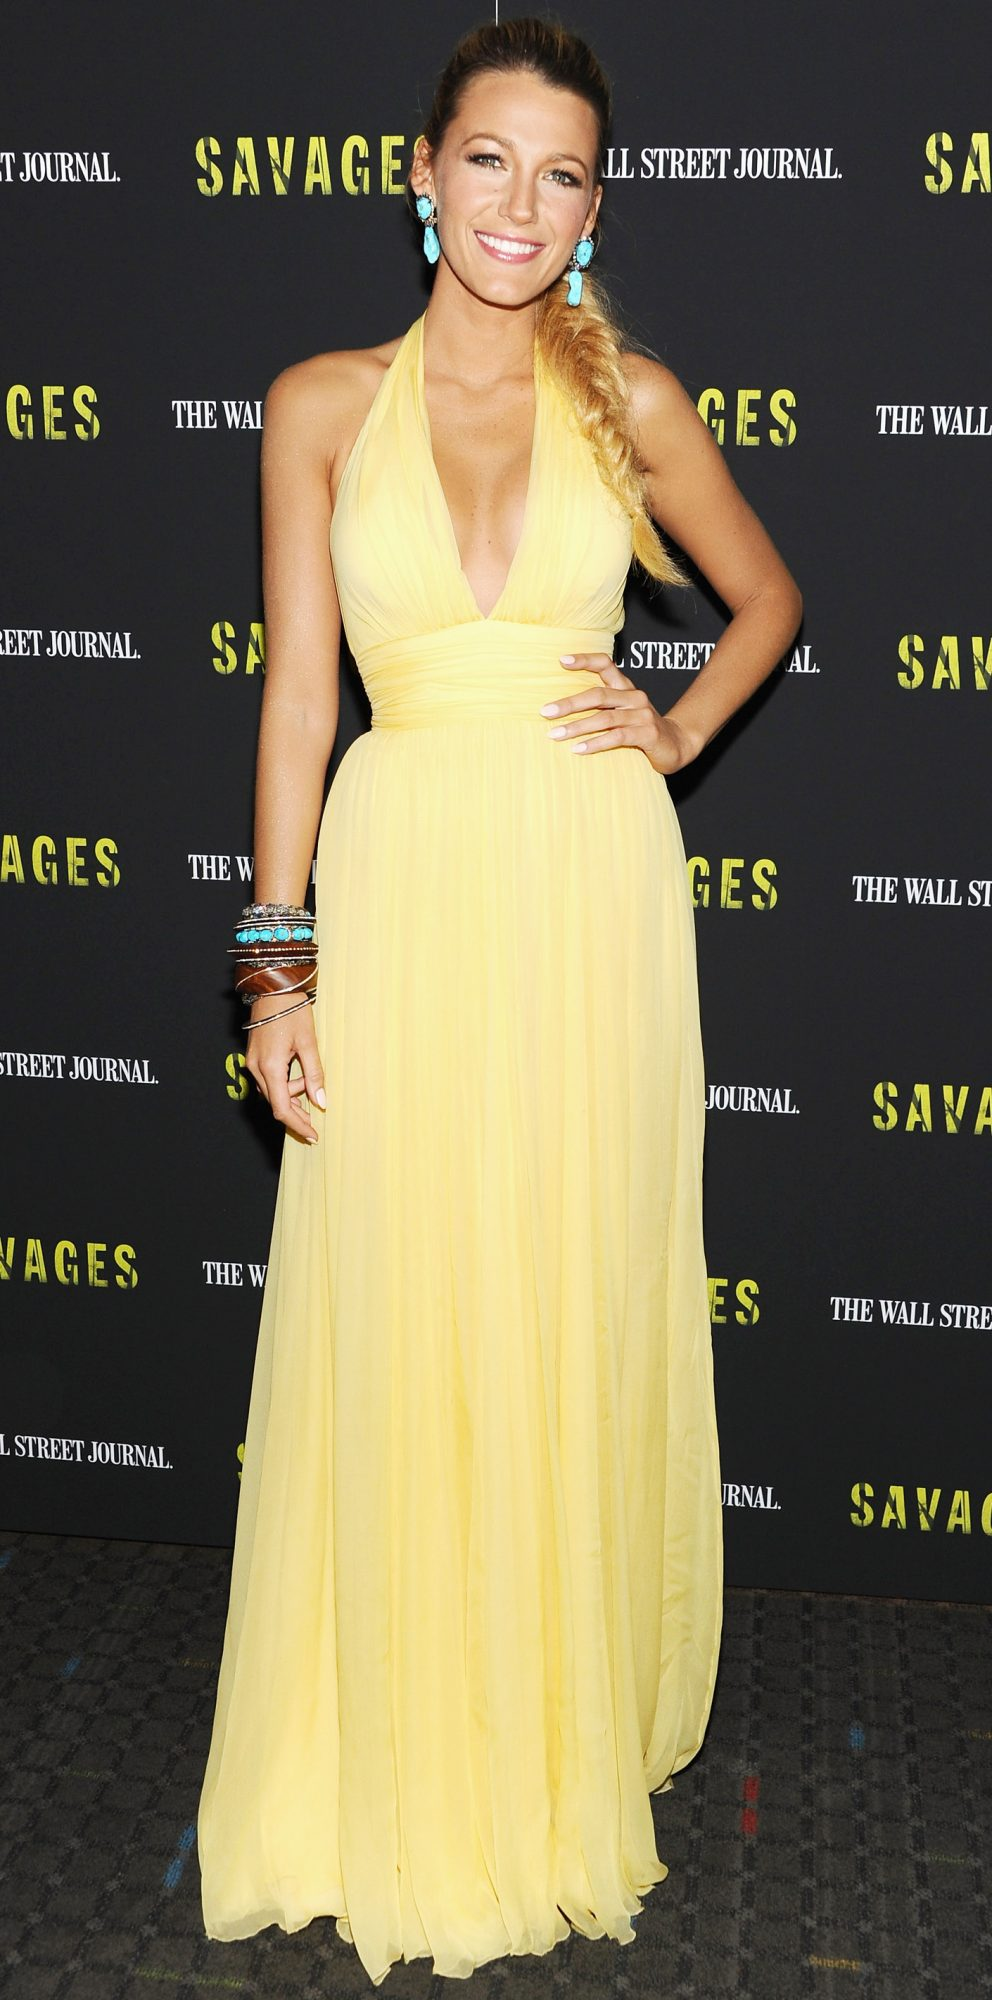 Savages  New York Premiere - Inside Arrivals